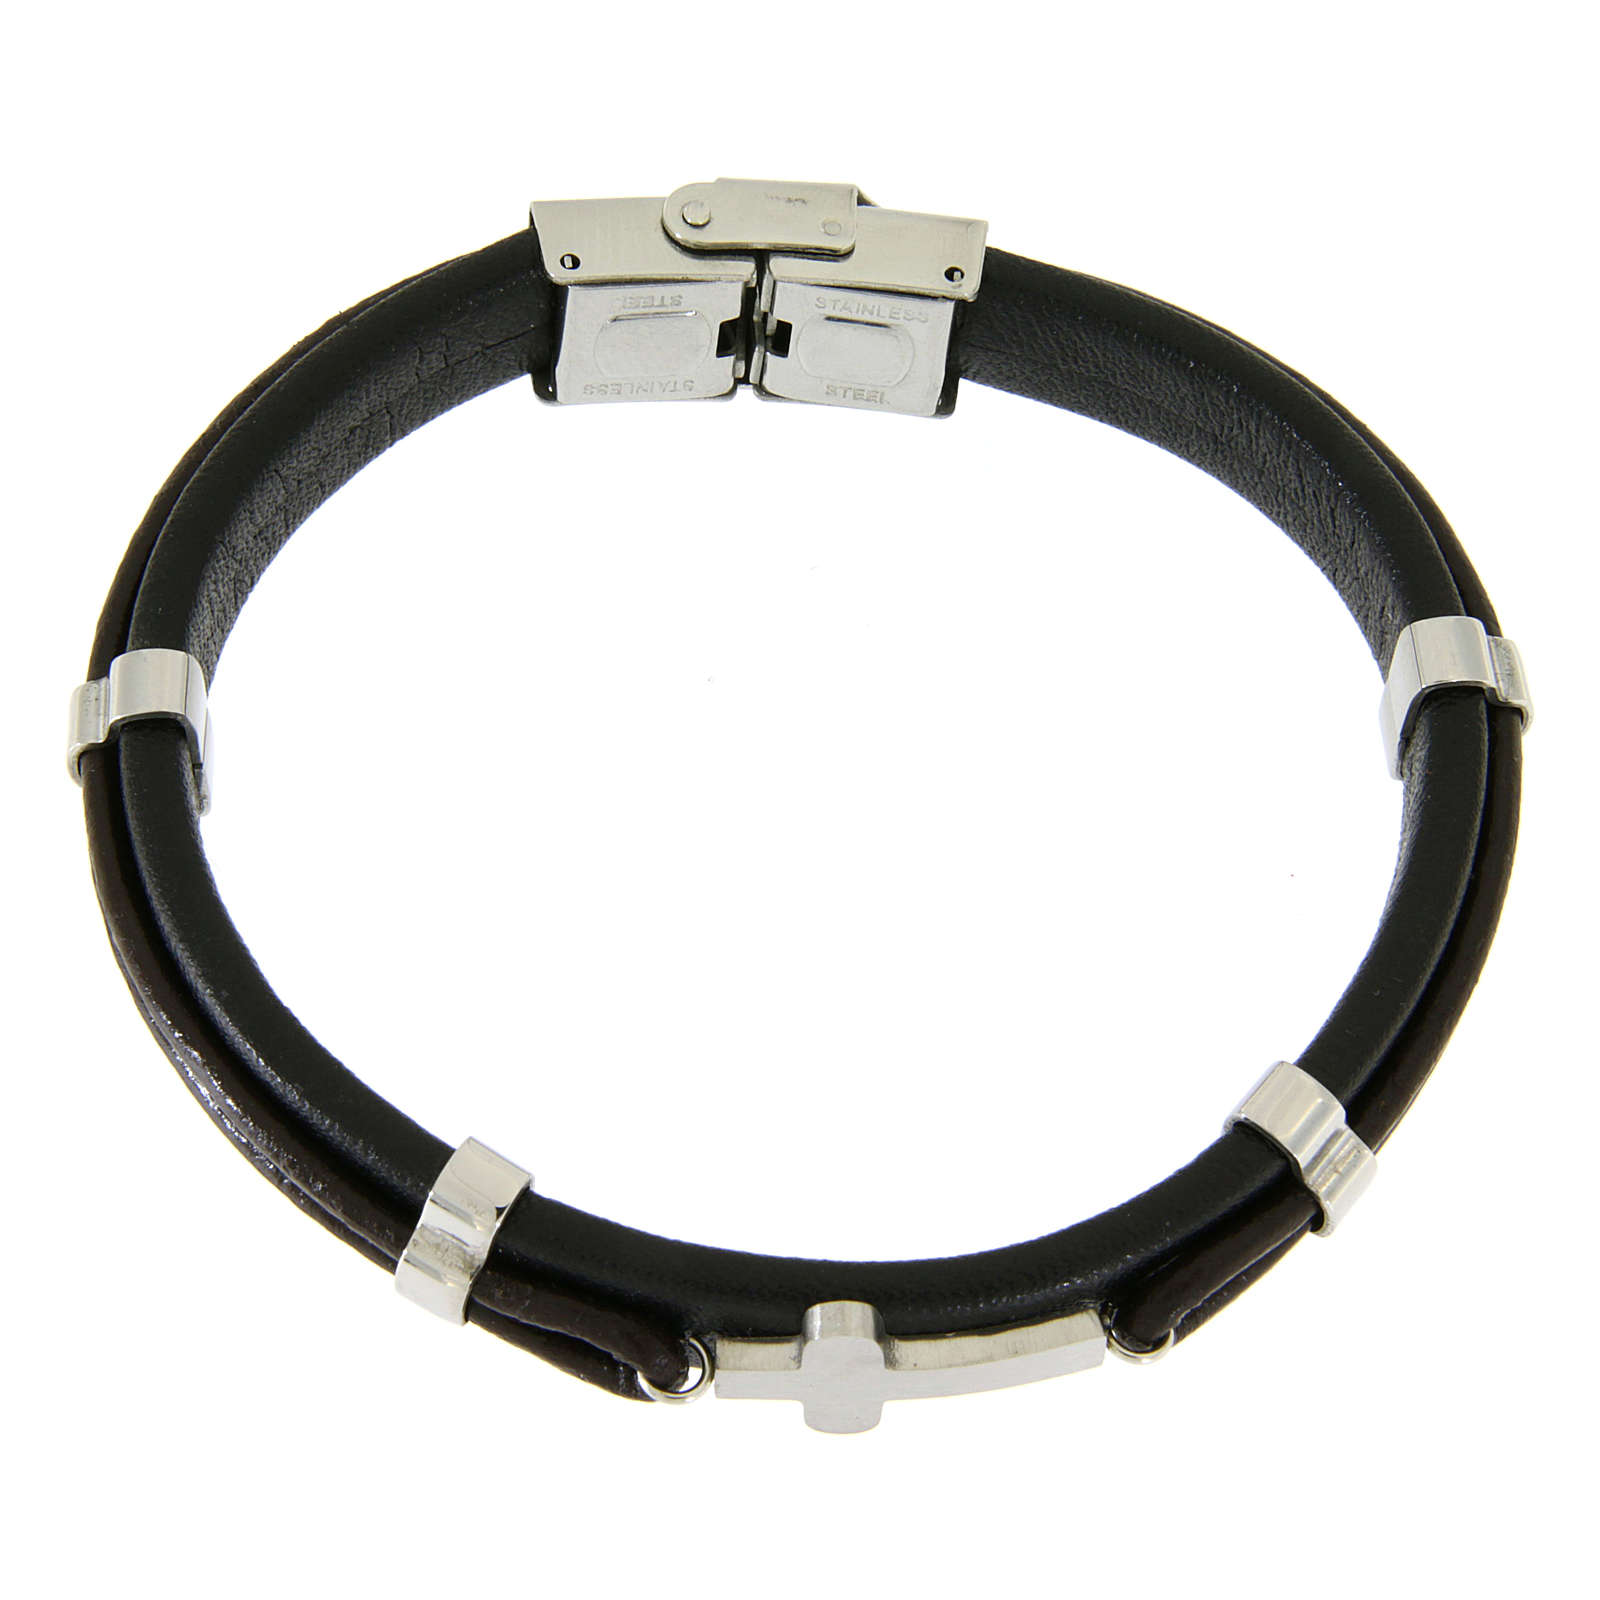 Bracelet in steel and leather with applications and smooth cross 4